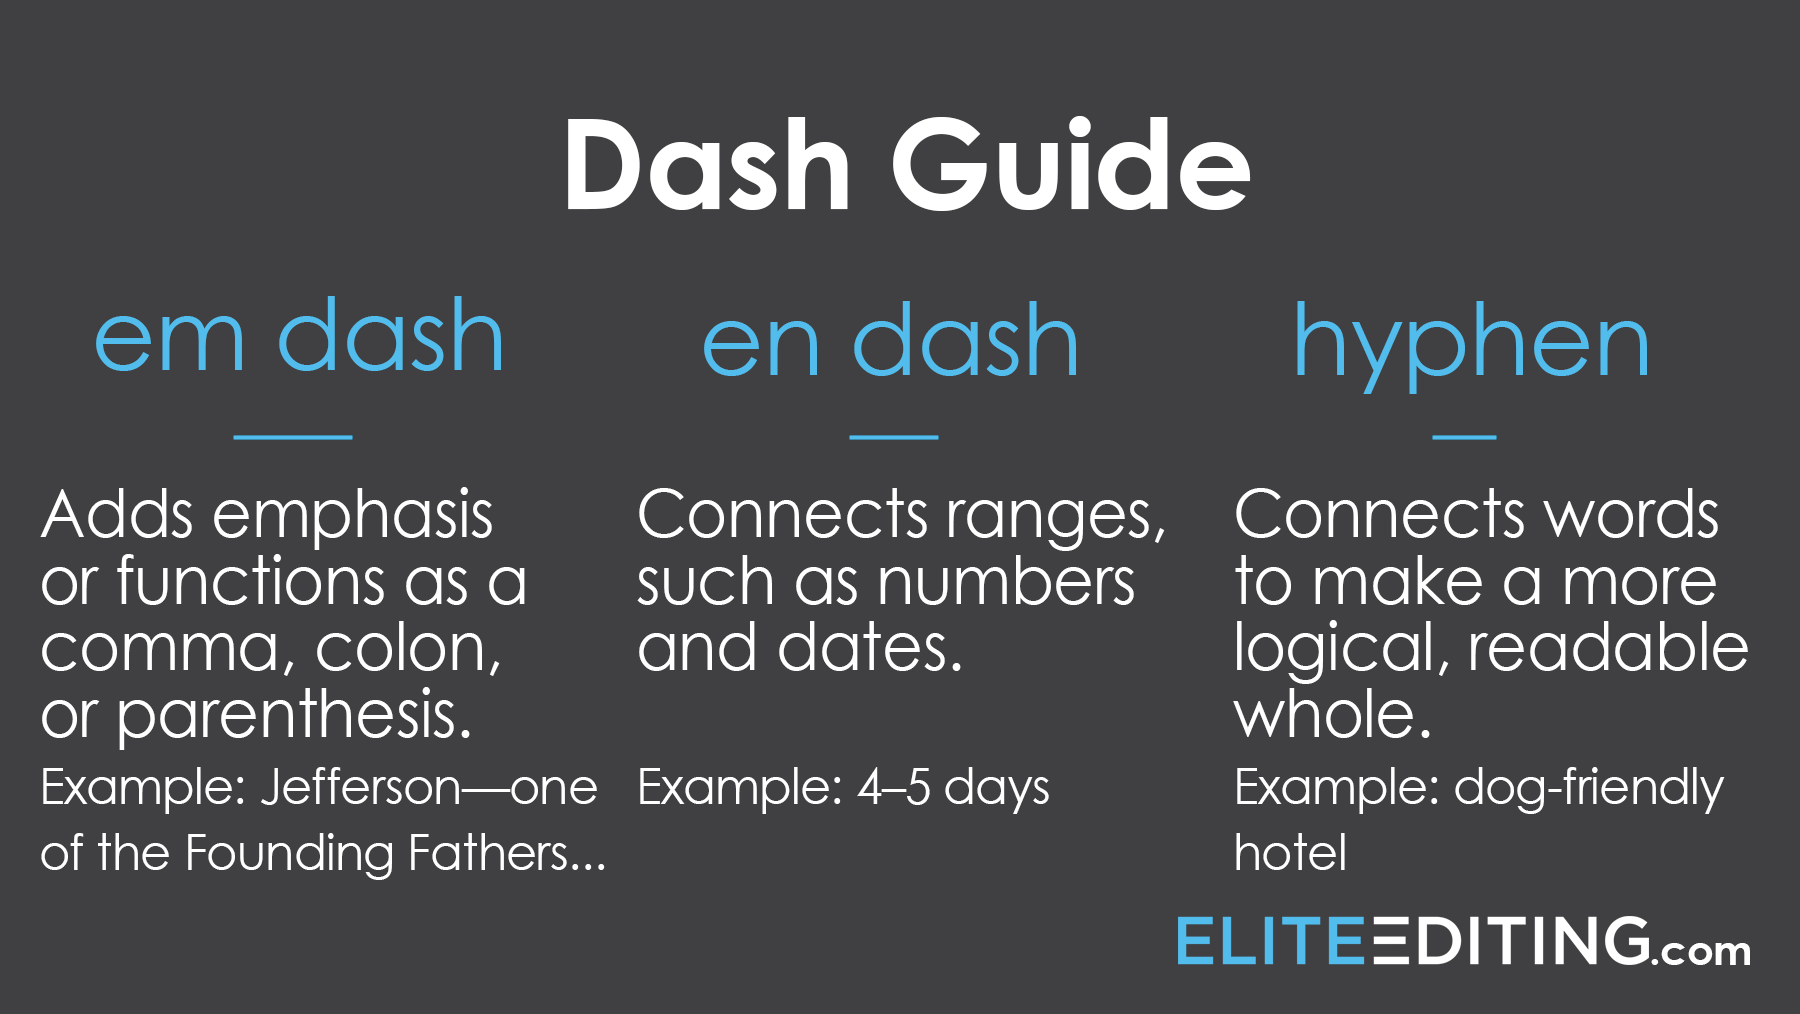 Using Dashes Em Dash Vs En Dash